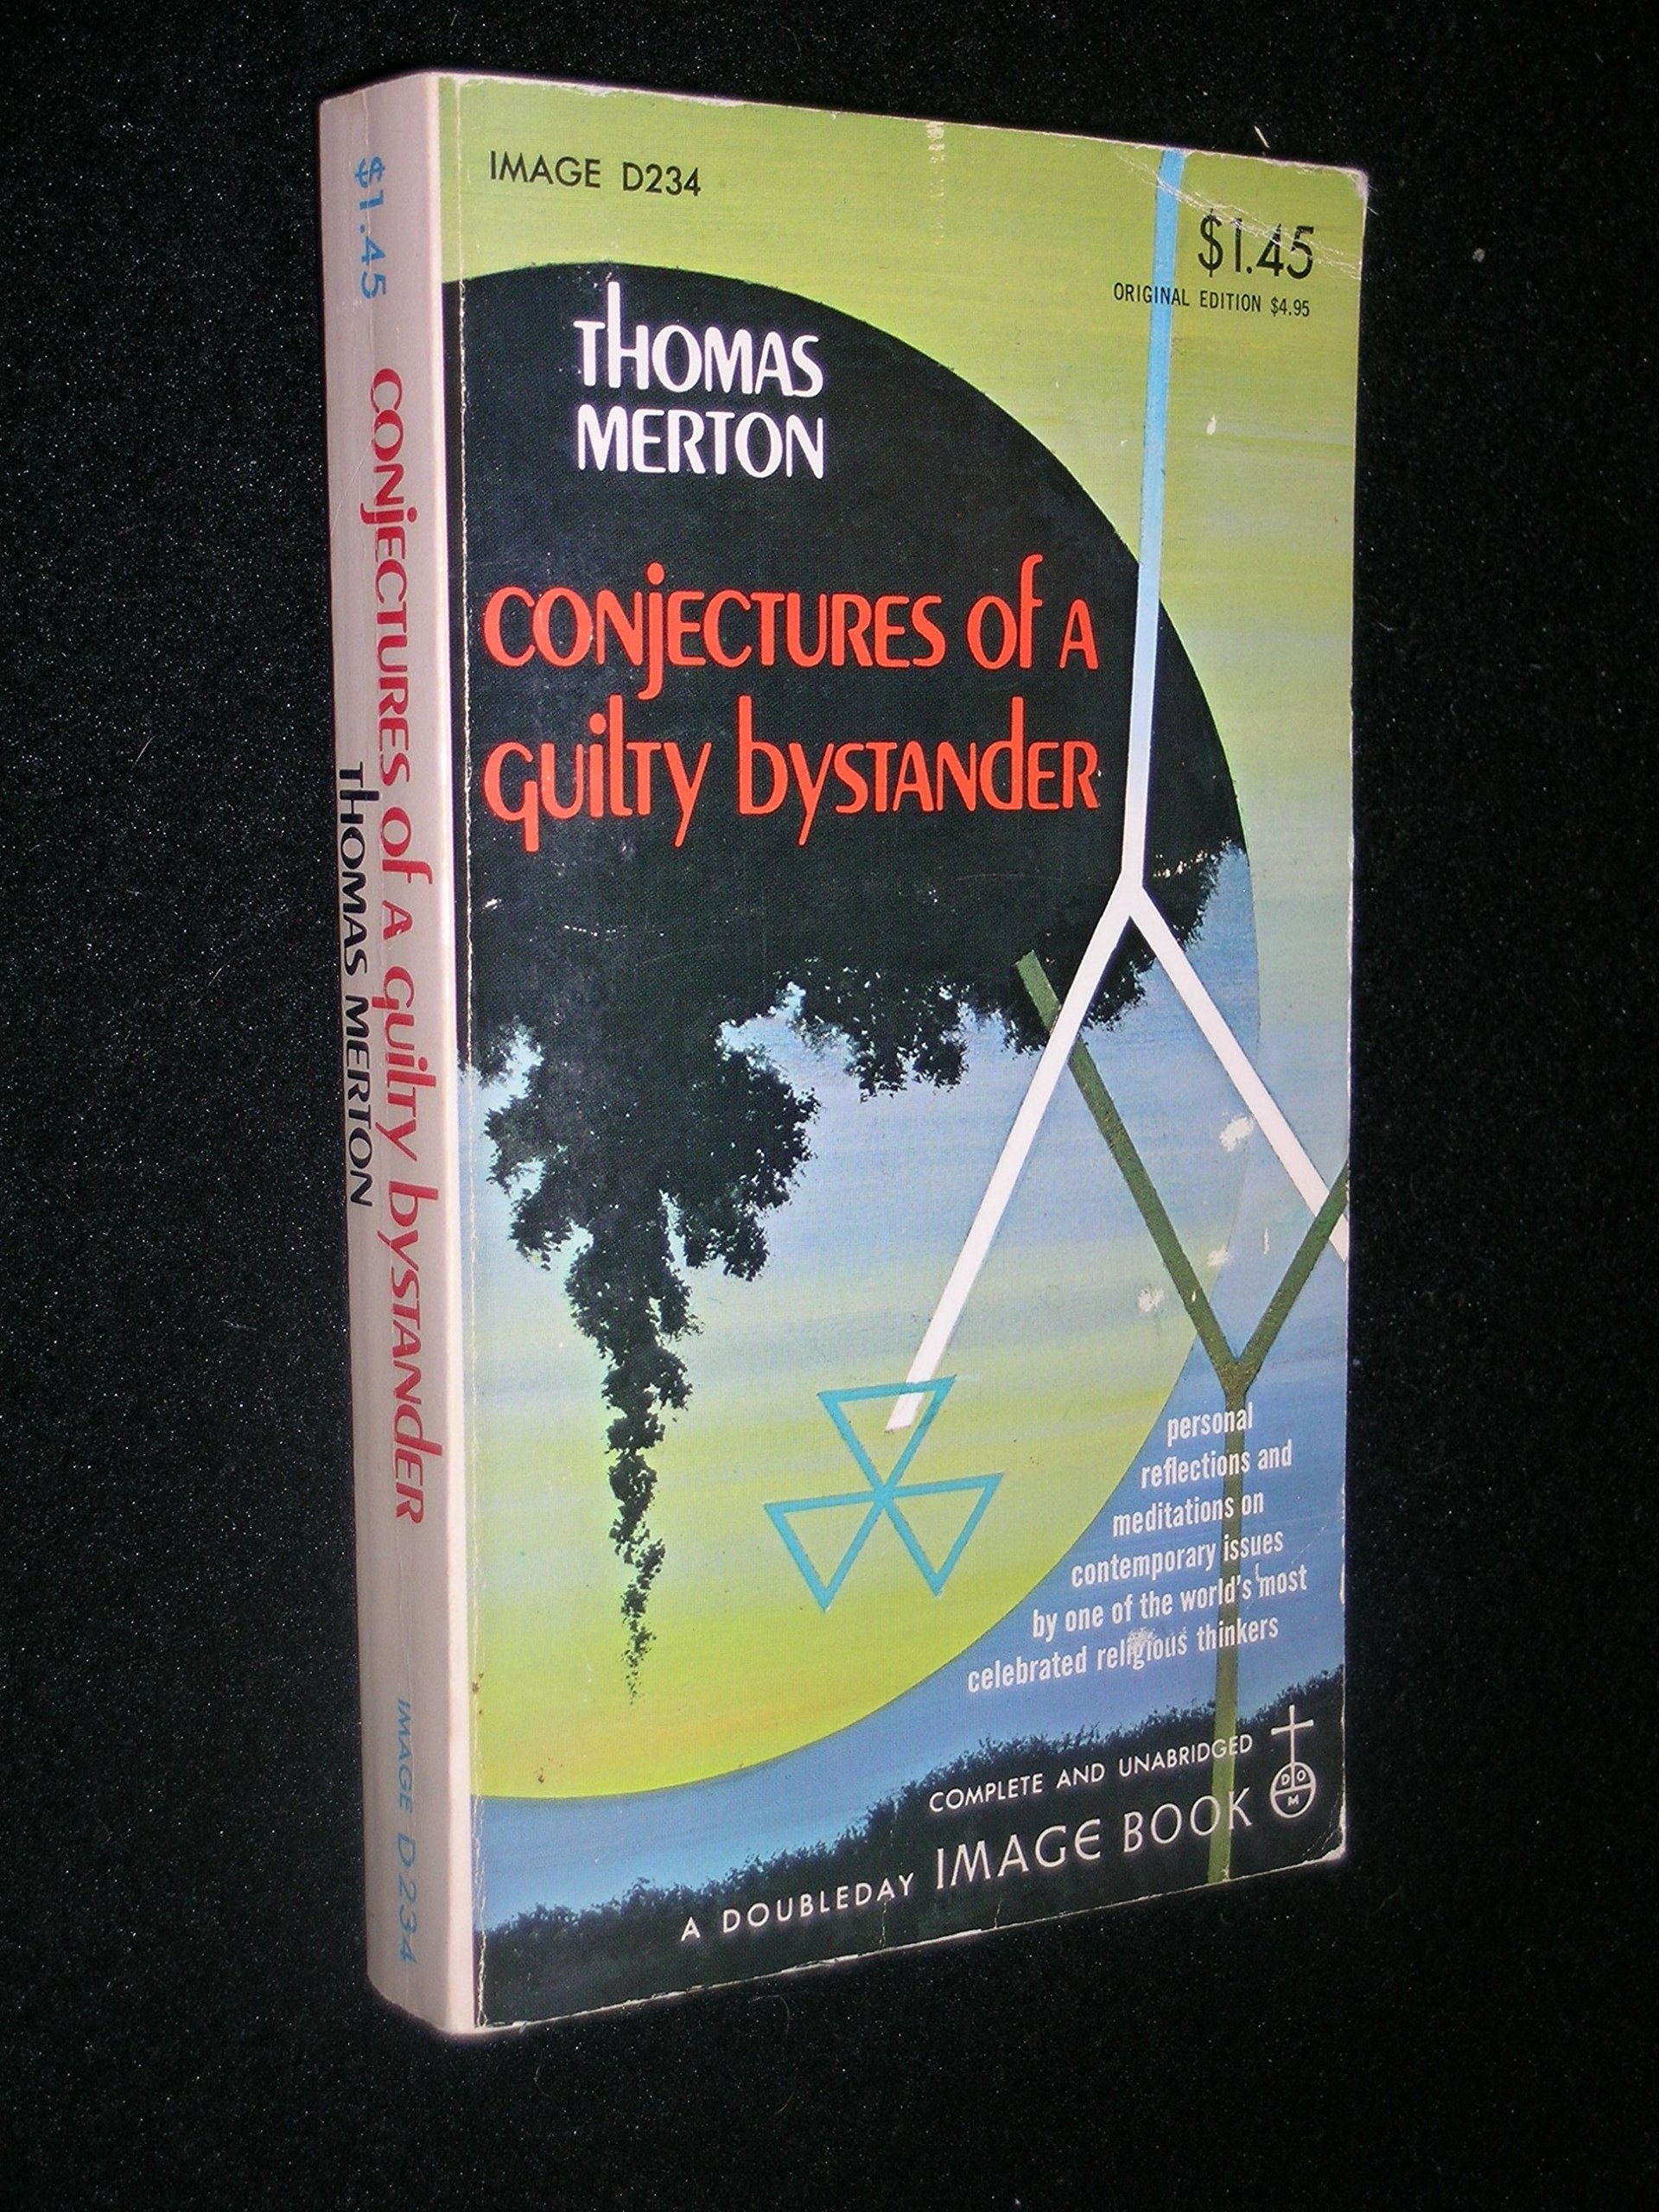 CONJECTURES OF A GUILTY BYSTANDER. Personal Reflections and Meditations on Contemporary Issues By One of the World's Most Celebrated Religious Thinkers., Merton, Thomas